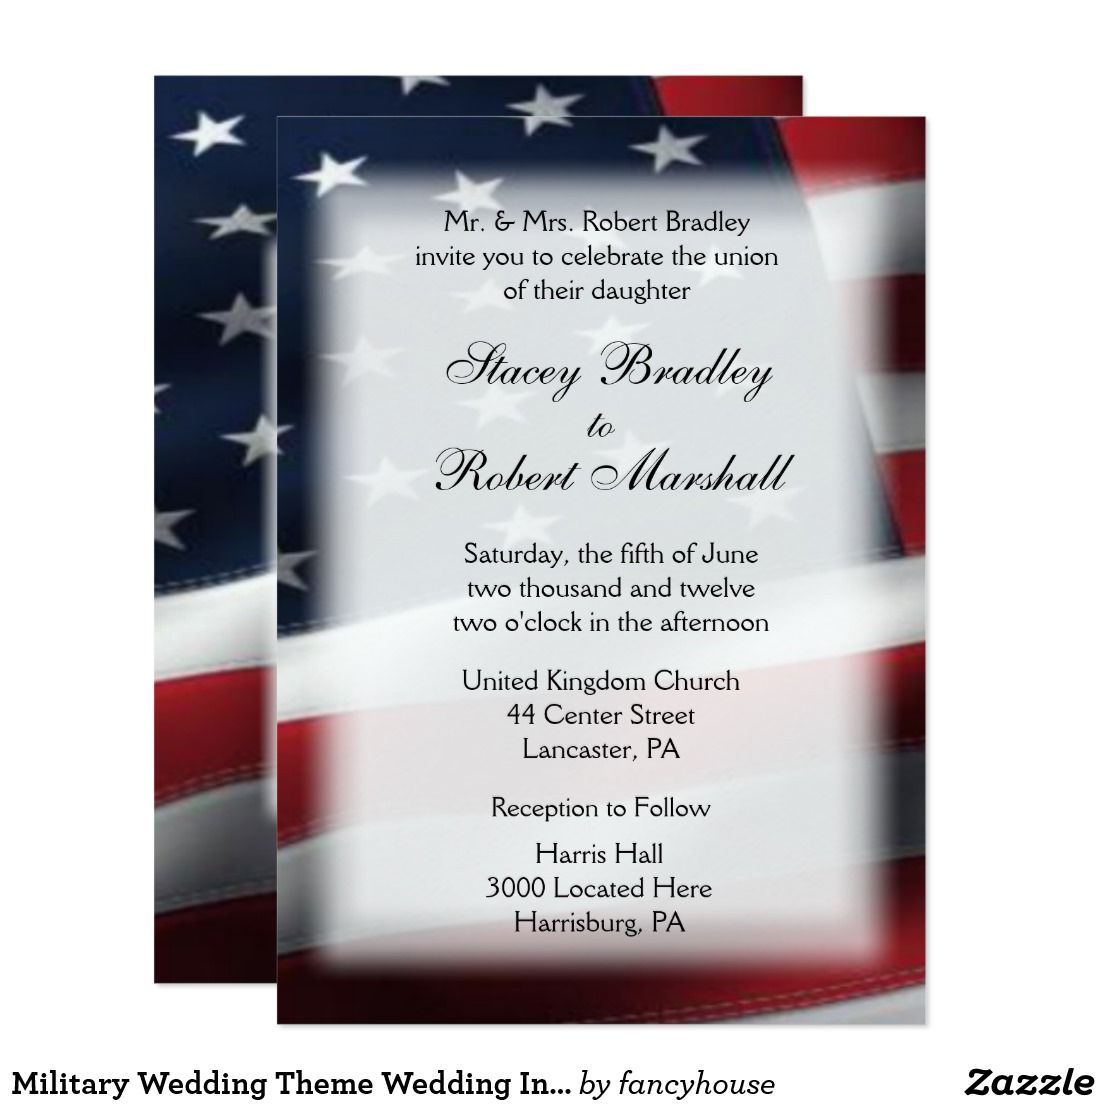 Military Wedding Theme Wedding Invitations 5\